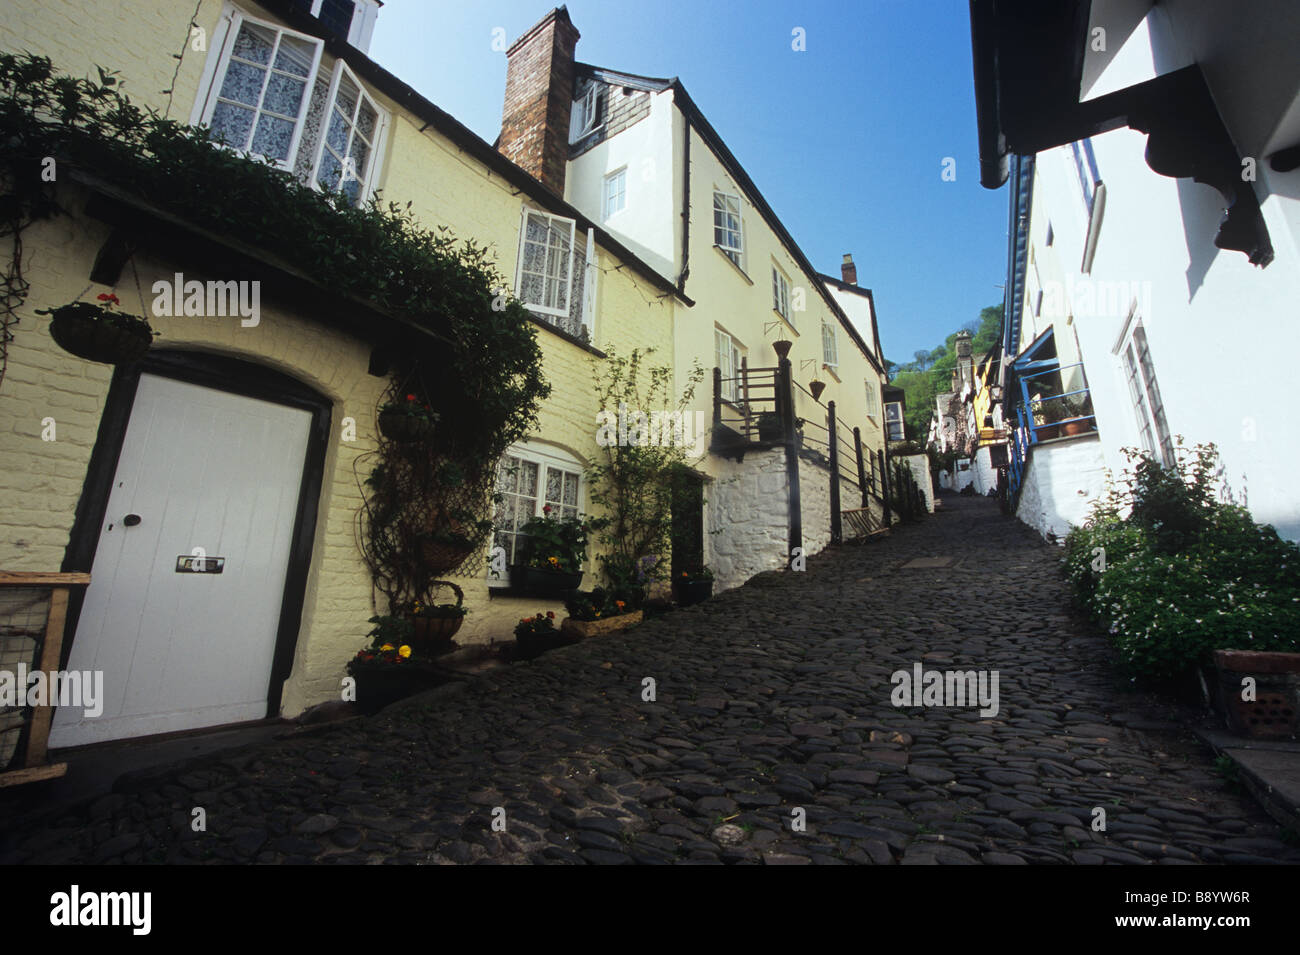 Cobbled main street and cottages on a quiet day in the picturesque  village of Clovelly, Devon, UK. - Stock Image